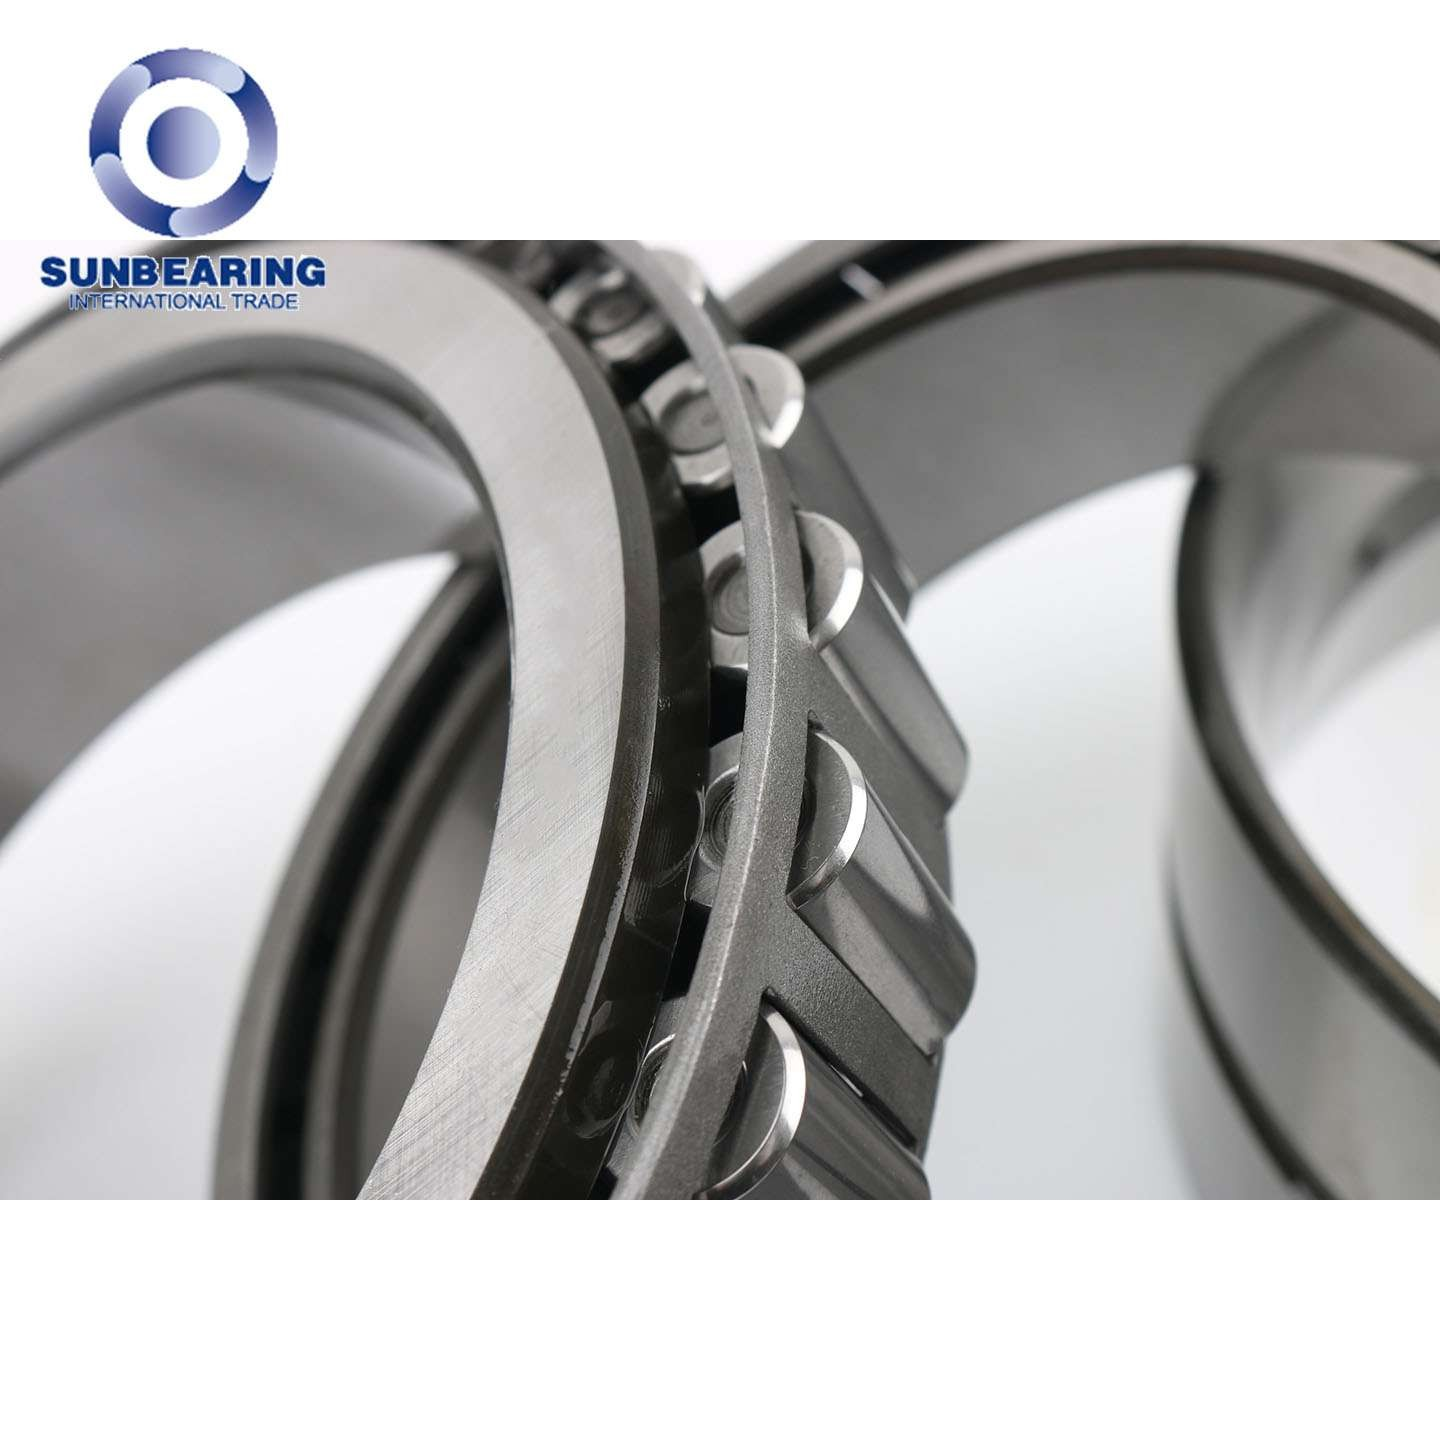 SUNBEARING 351076 Tapered Roller Bearing Silver 380*560*190mm Chrome Steel GCR5